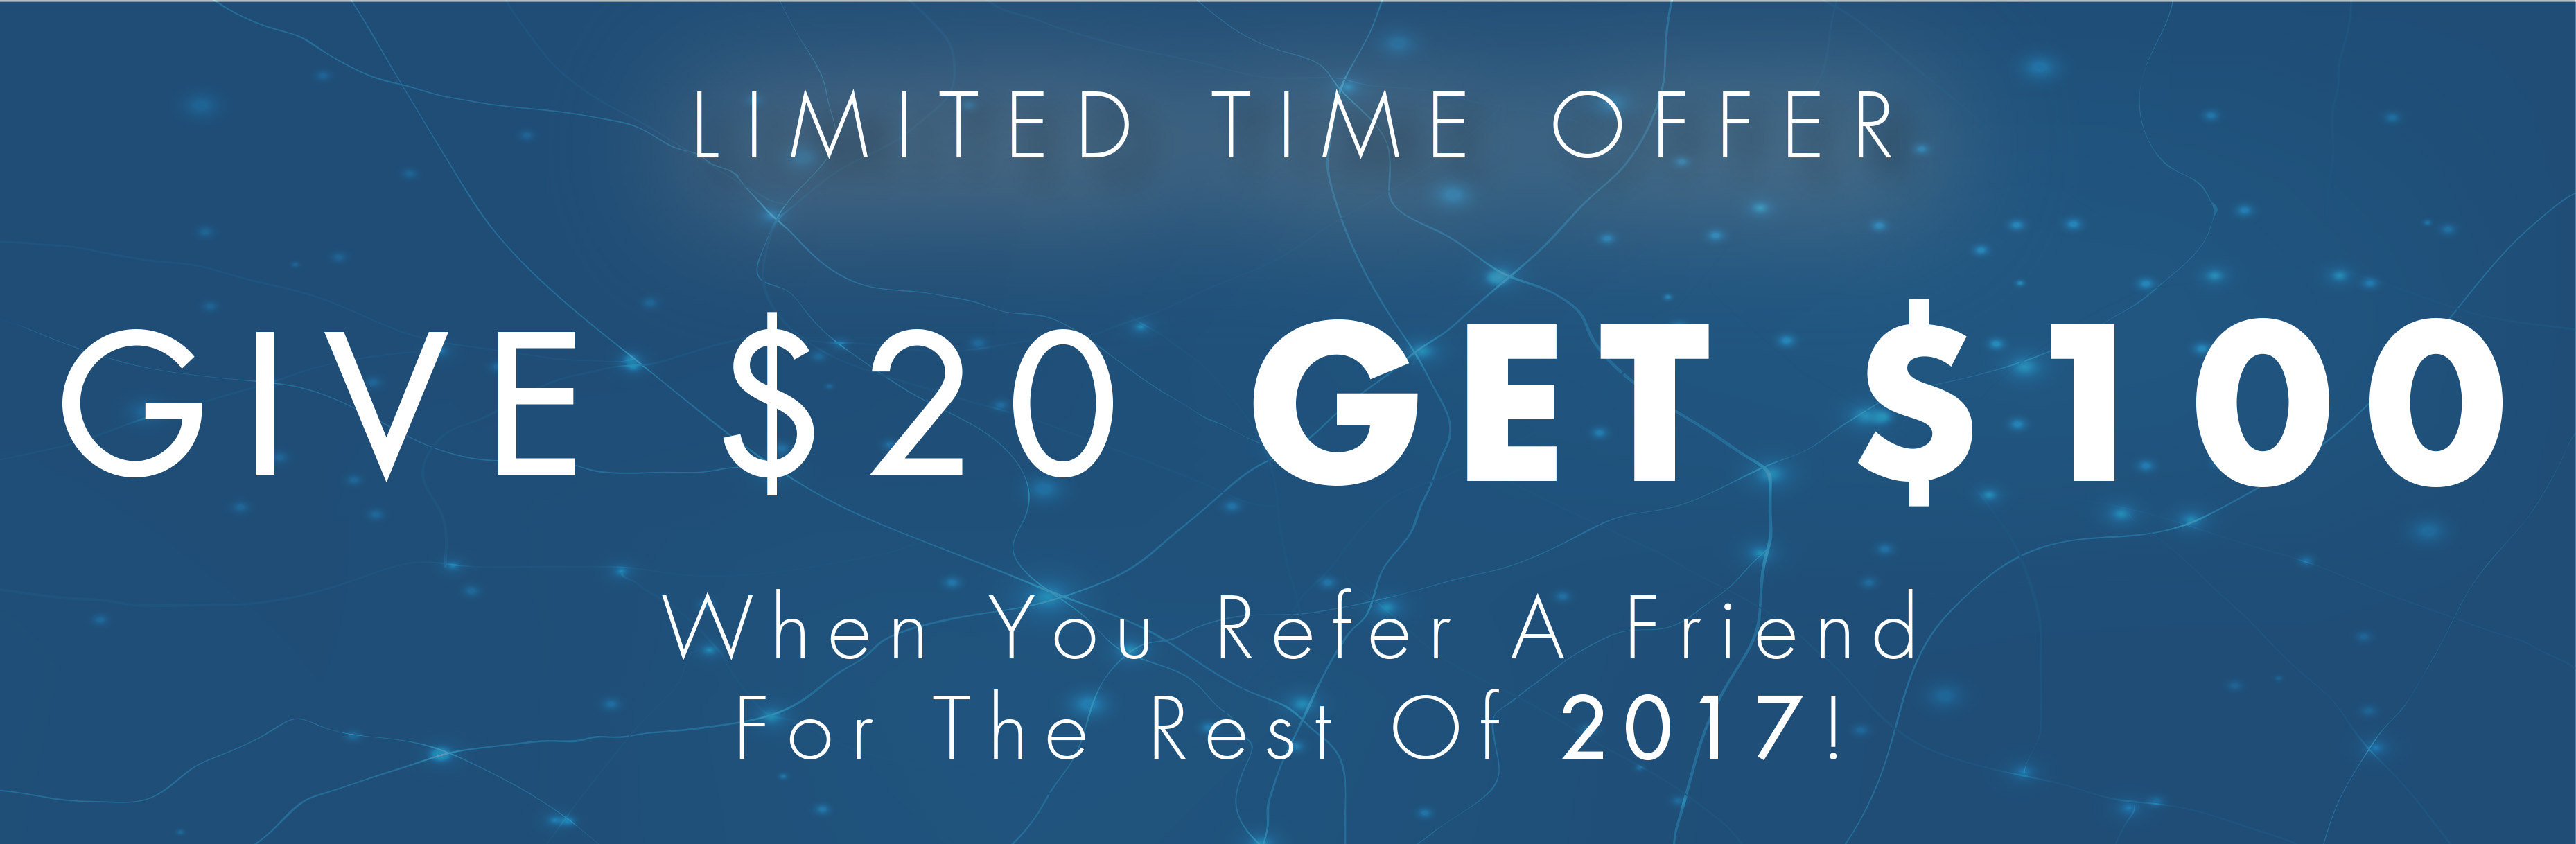 Give $20, Get $100 When You Refer A Friend